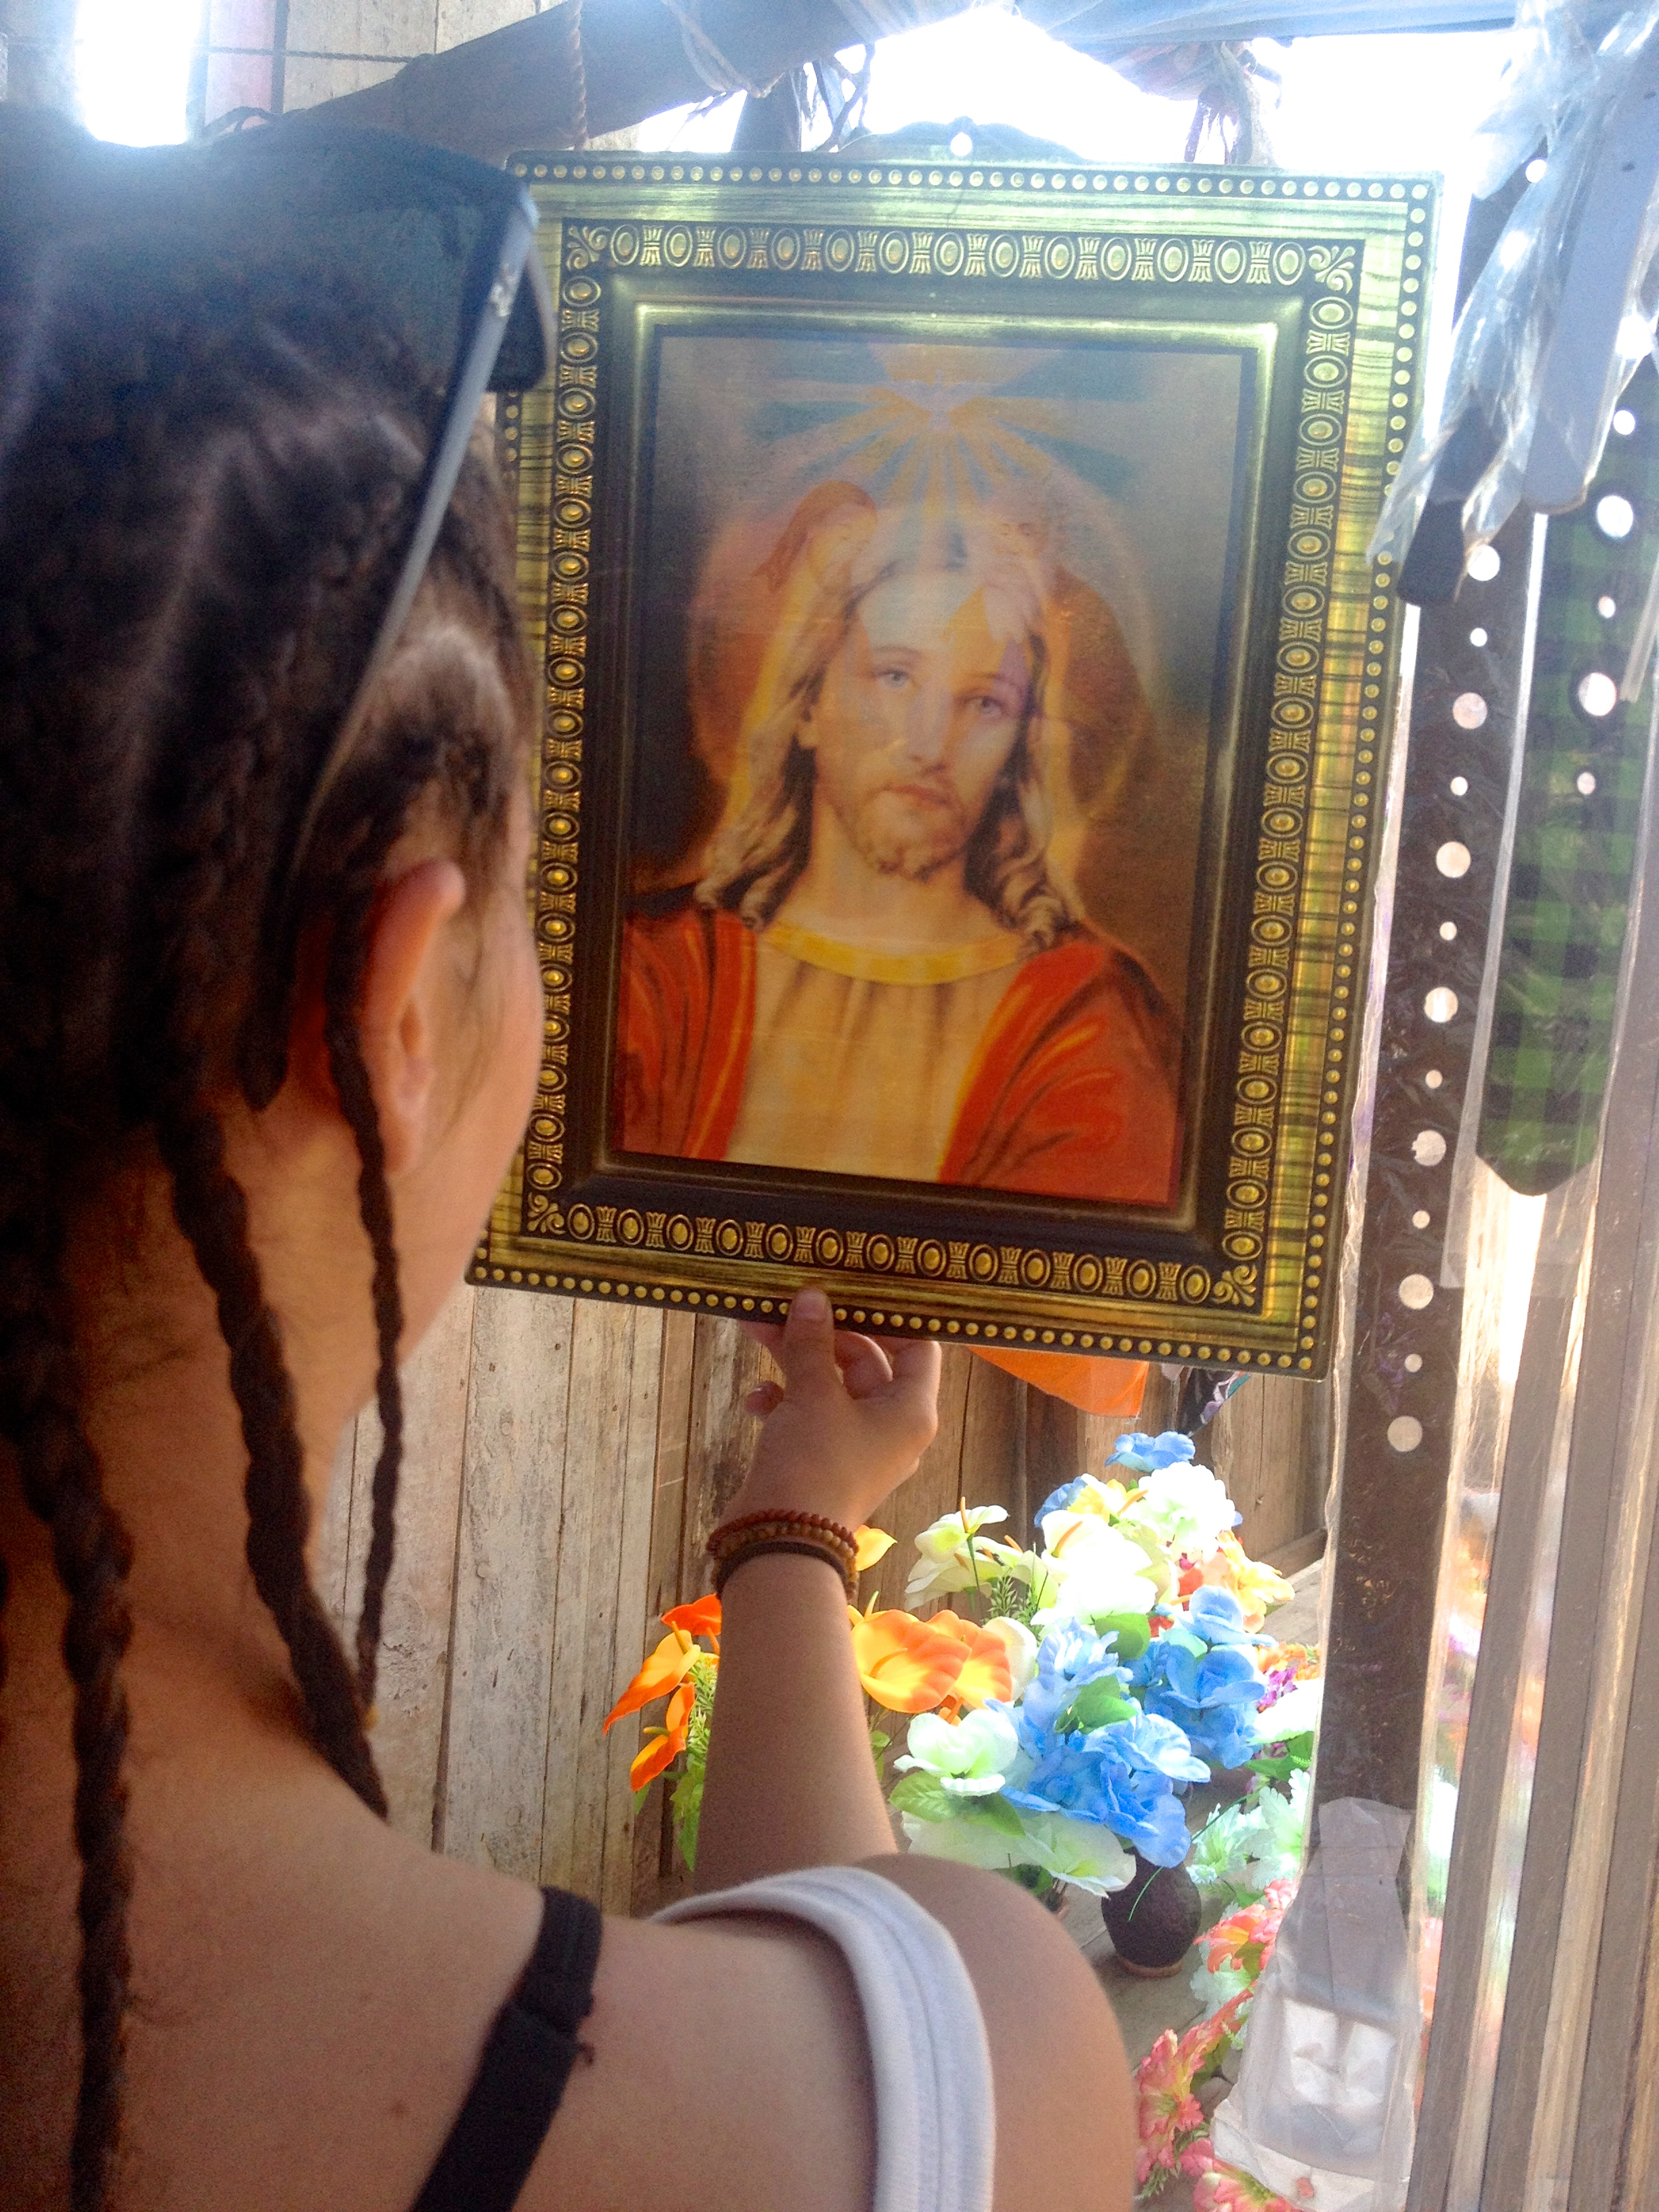 Hologram Jesus at the market in Mananjary.